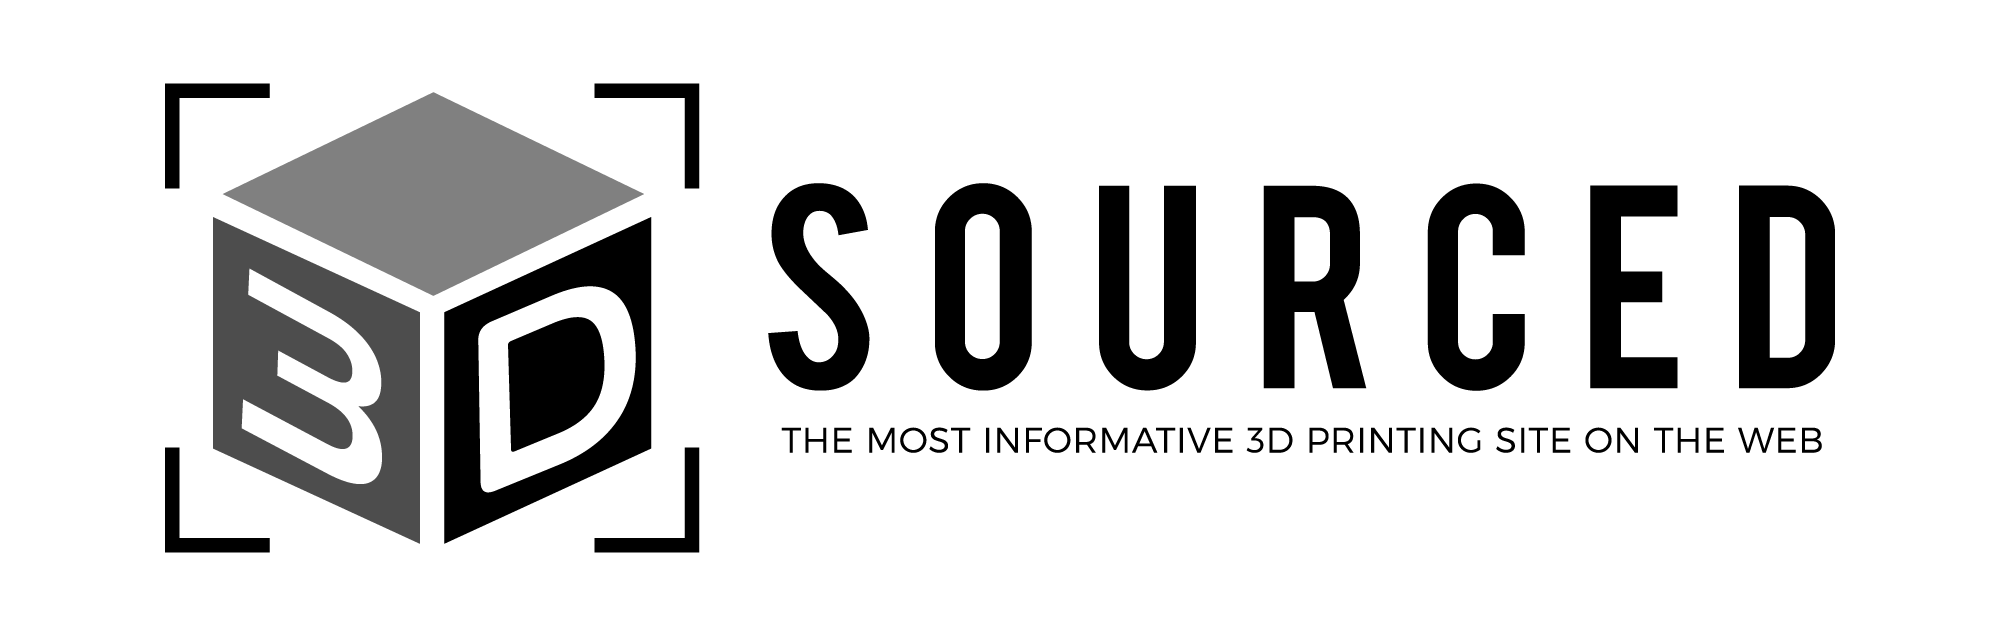 3DSourced